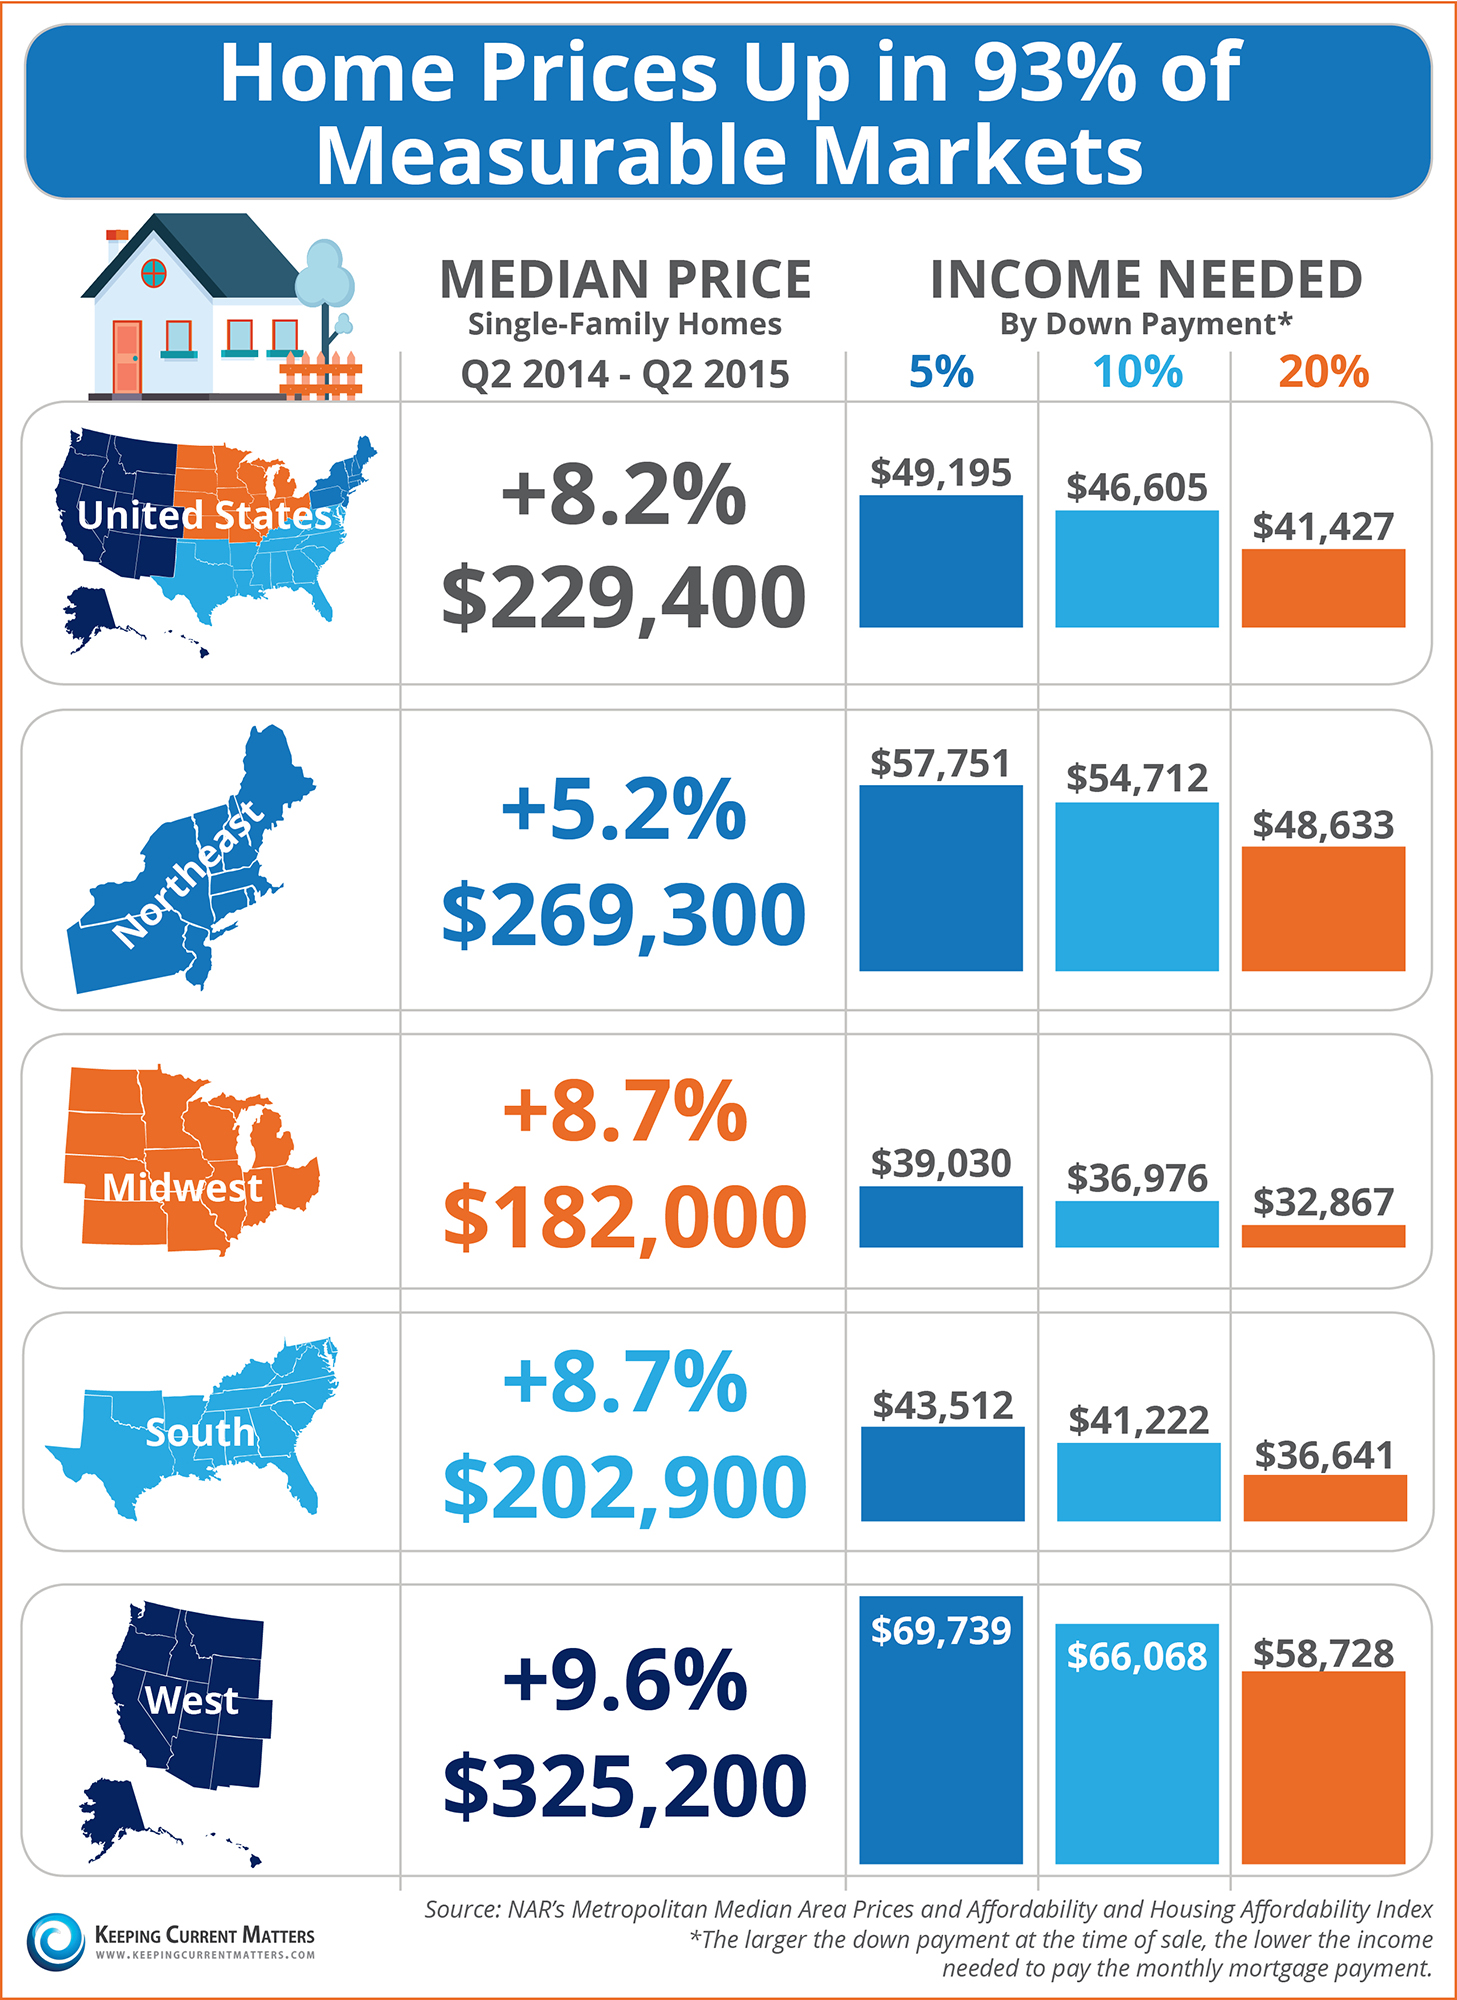 Home Prices Up in 93% of Measurable Markets